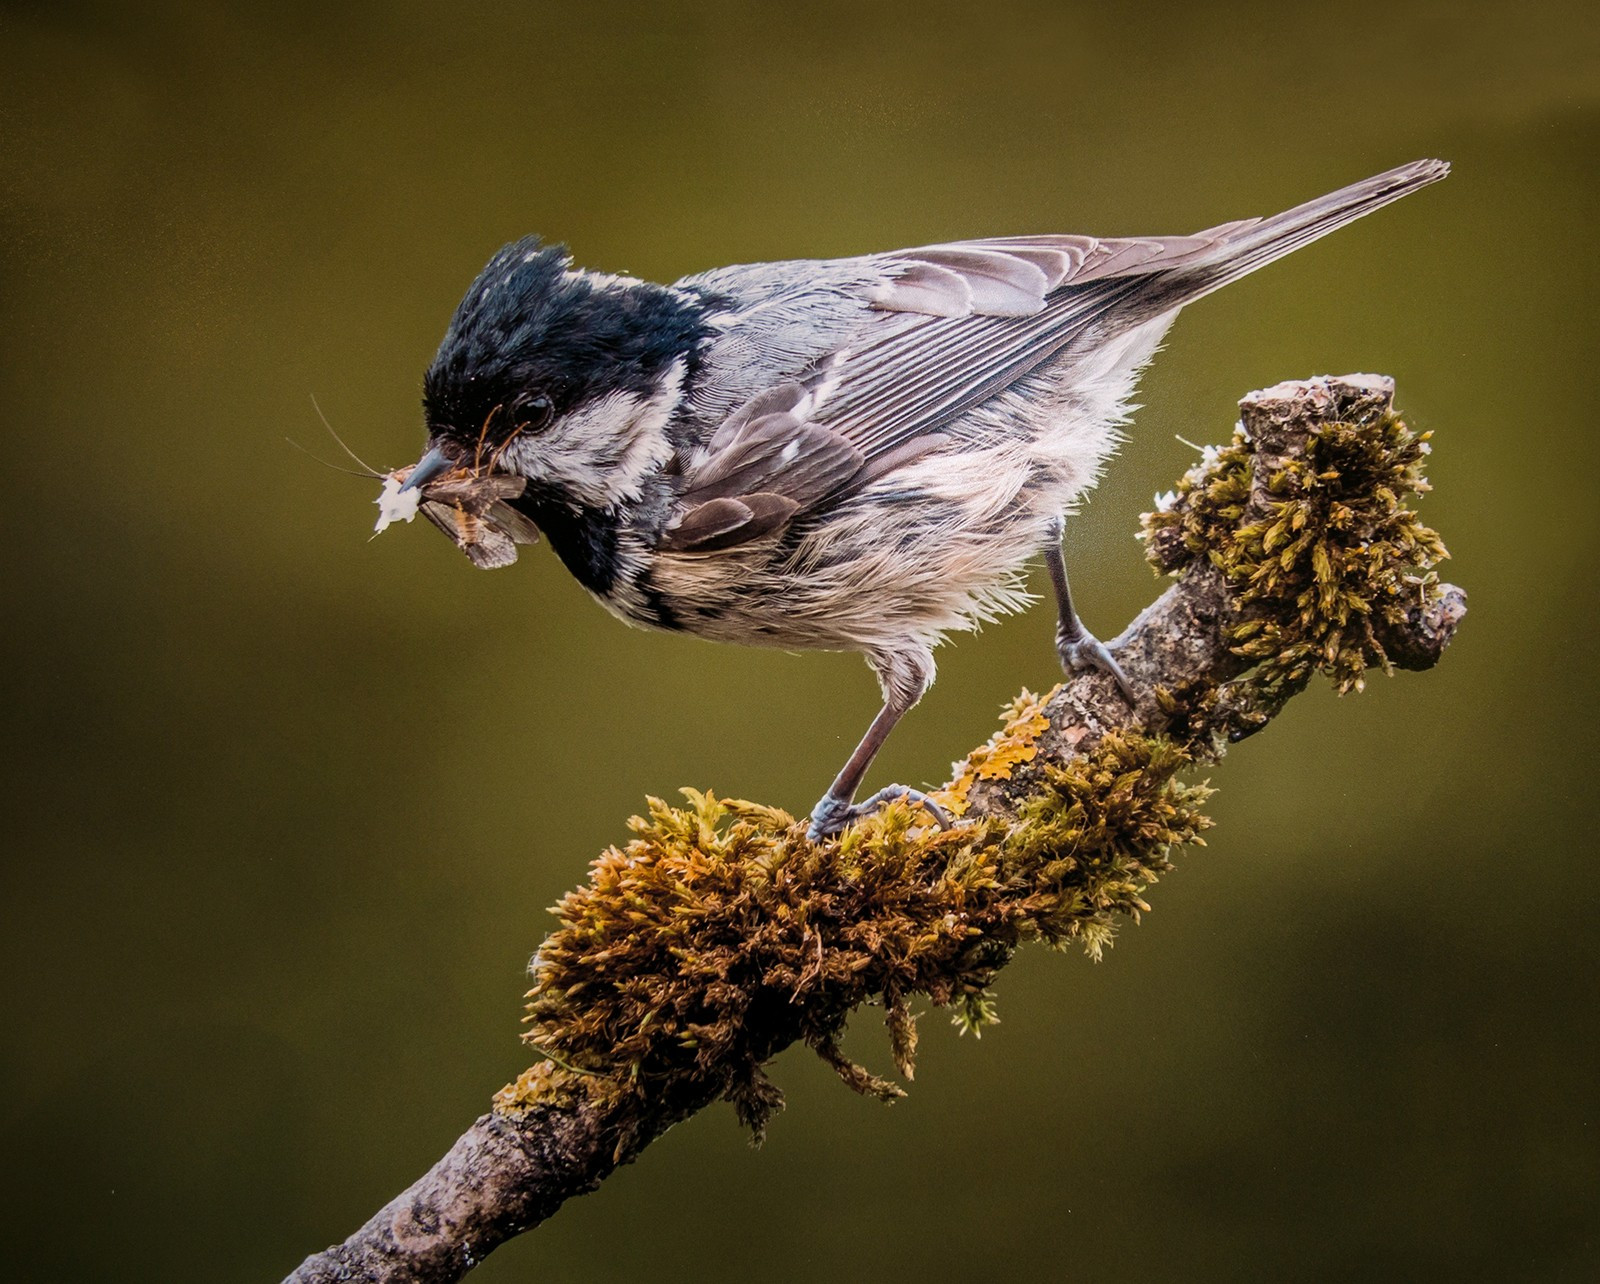 Coal Tit with prey